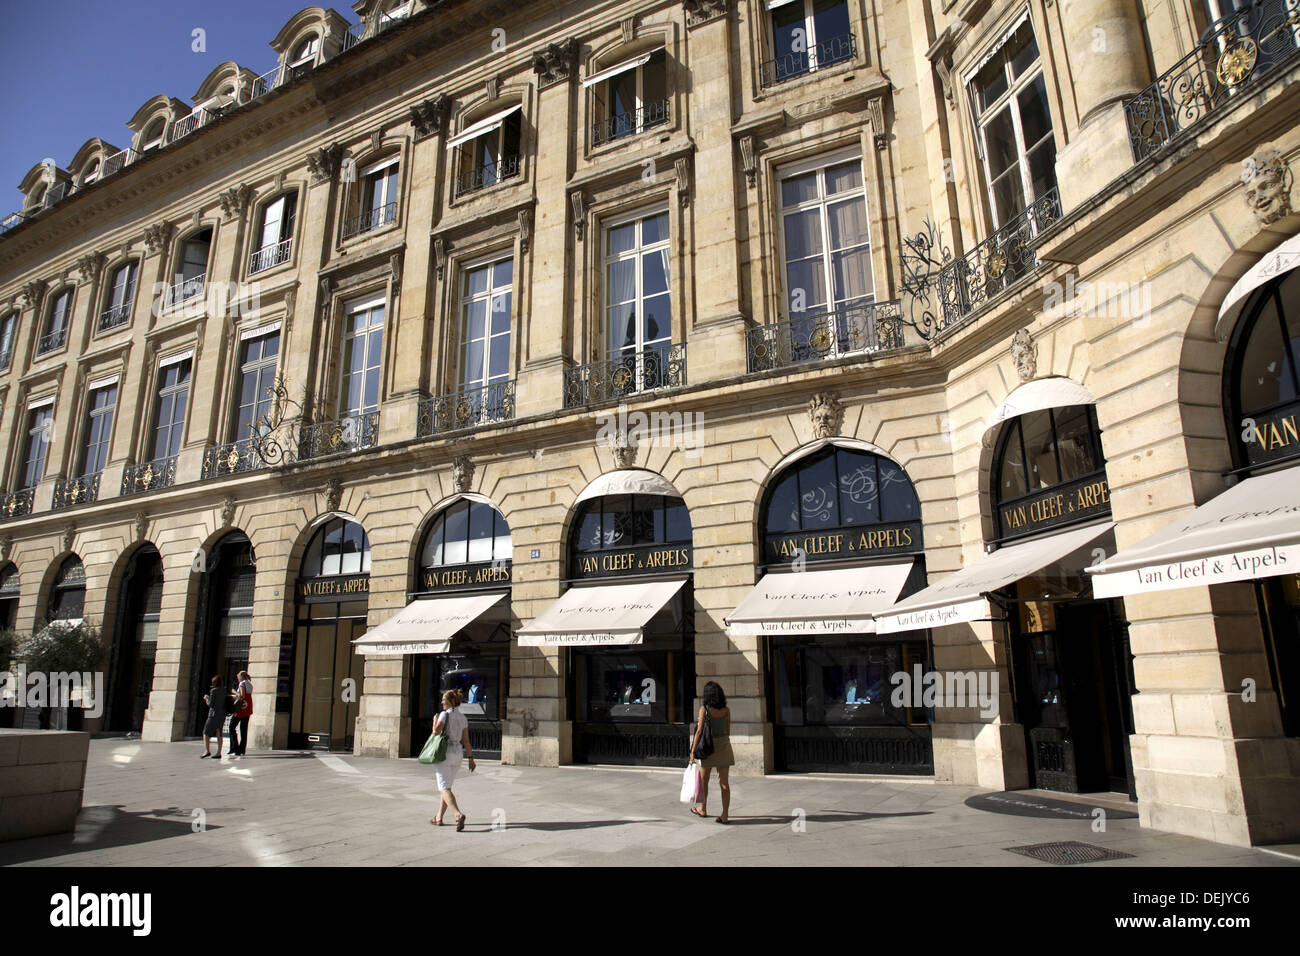 Expensive jewellery shops on Place Vendome, Paris. France - Stock Image